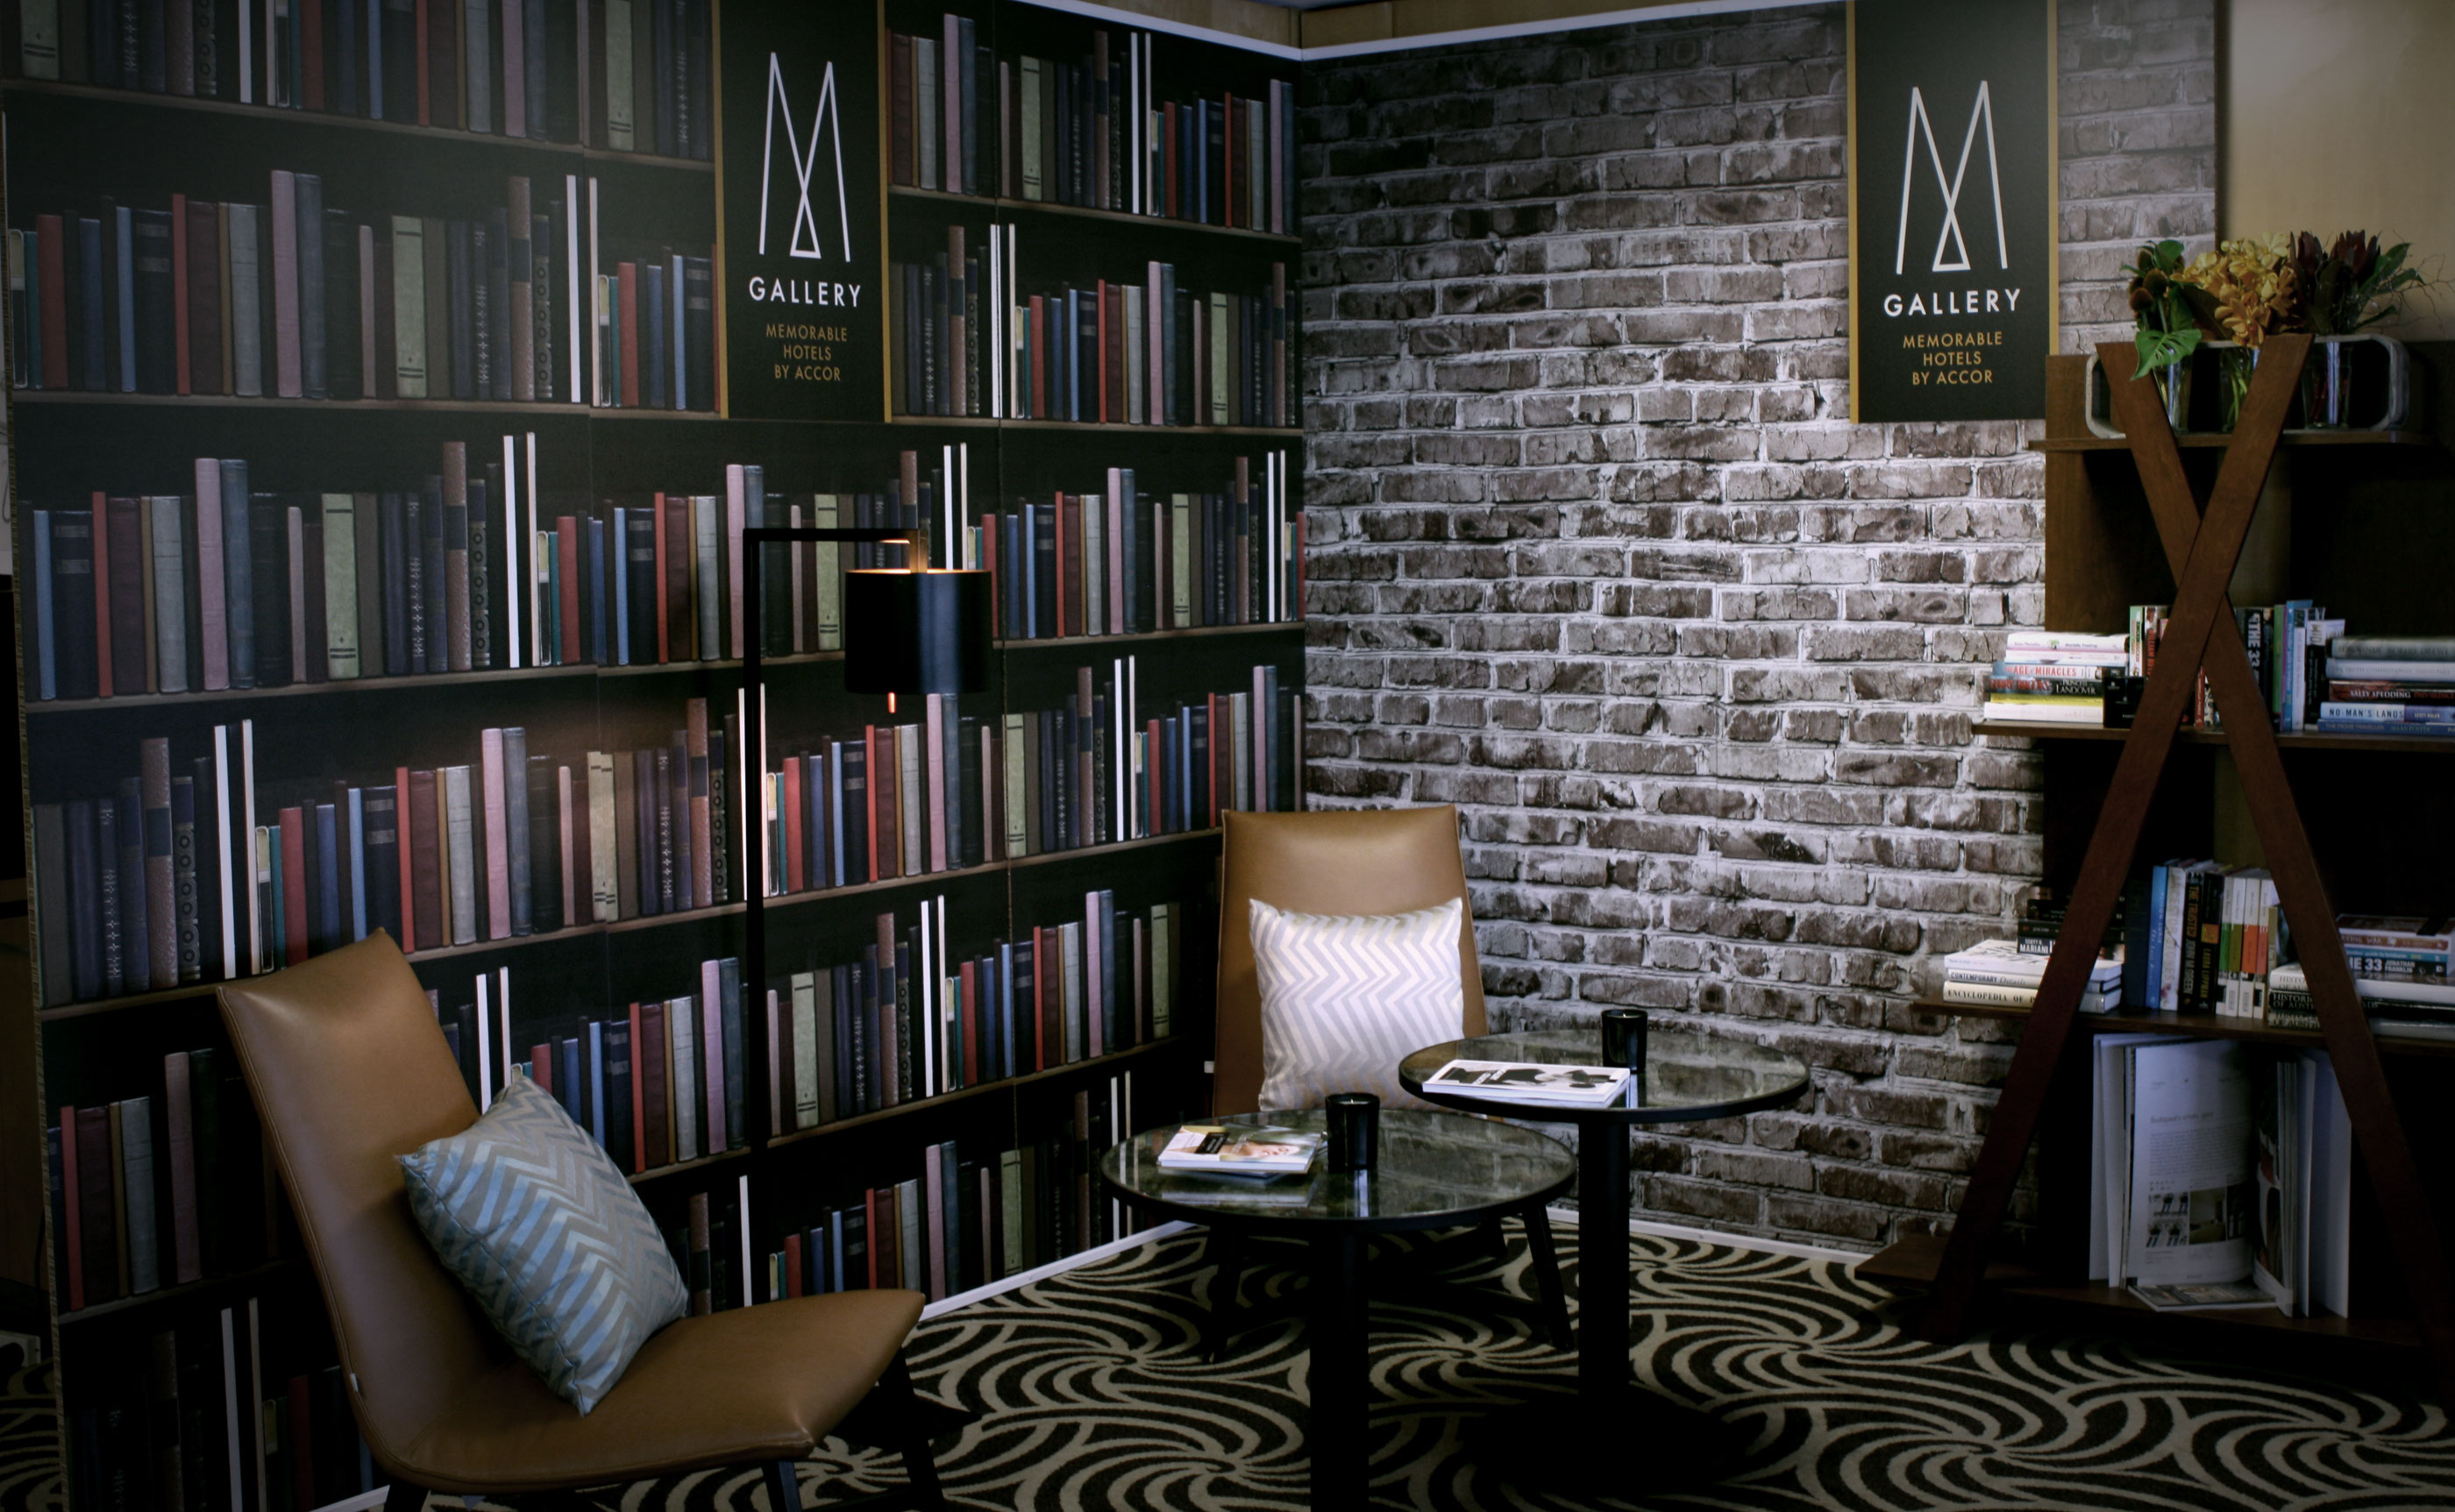 Image: The MGallery Literary Collection